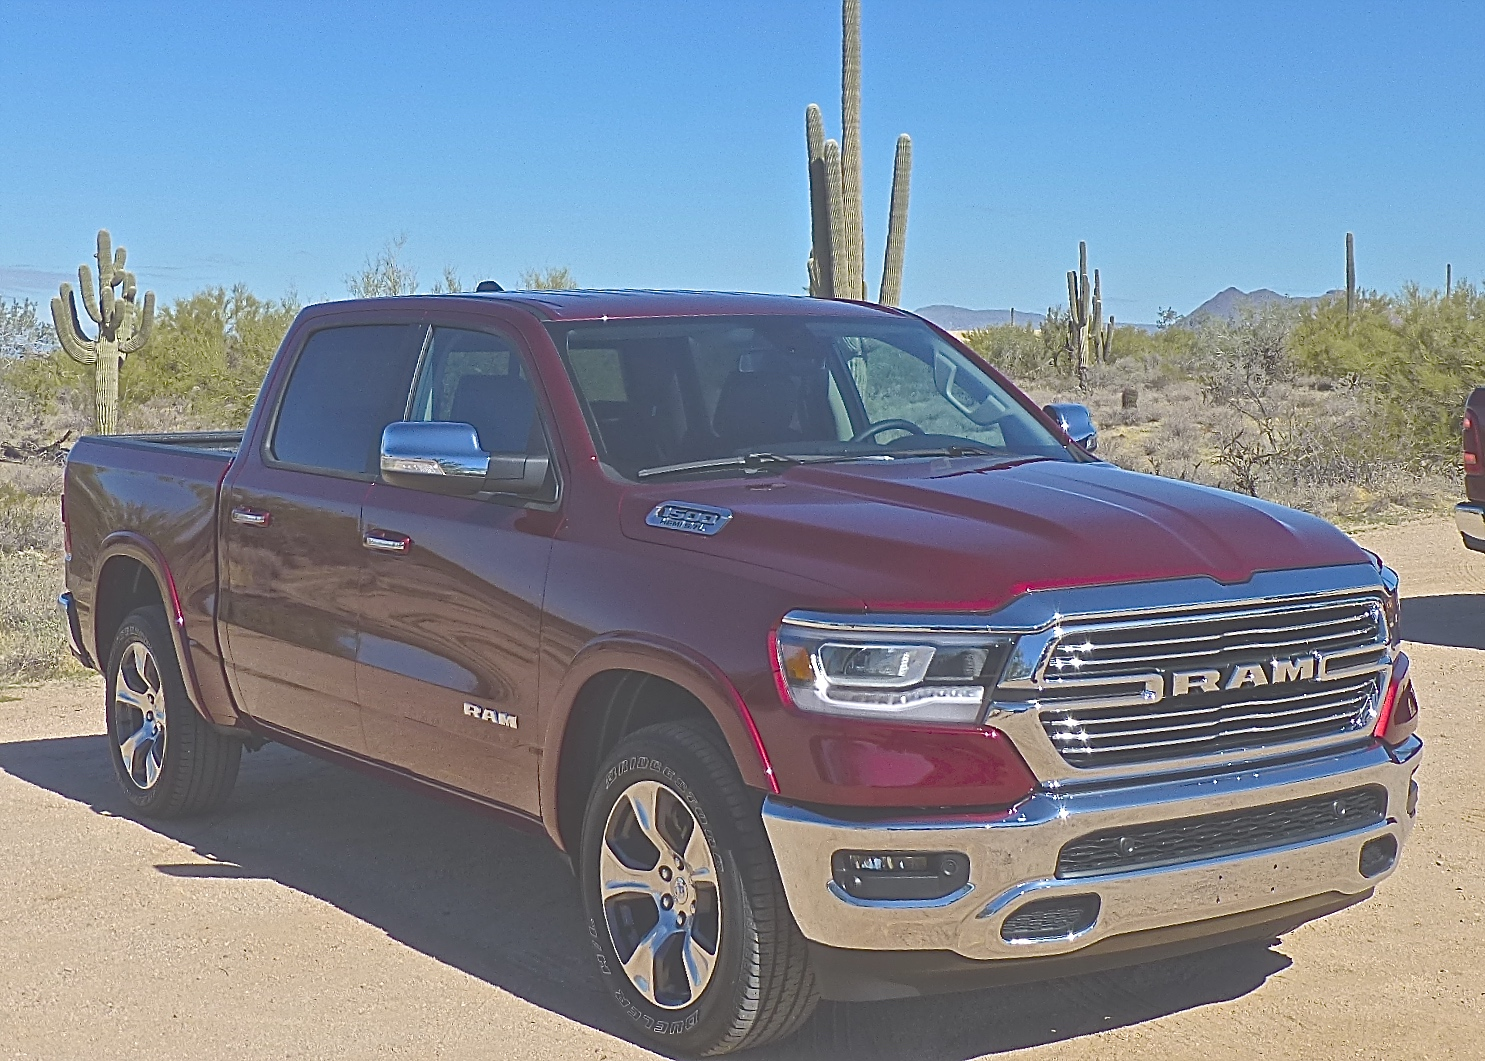 Dramatic change from grille, to interior, frame ride, handling mark 2019 Ram.